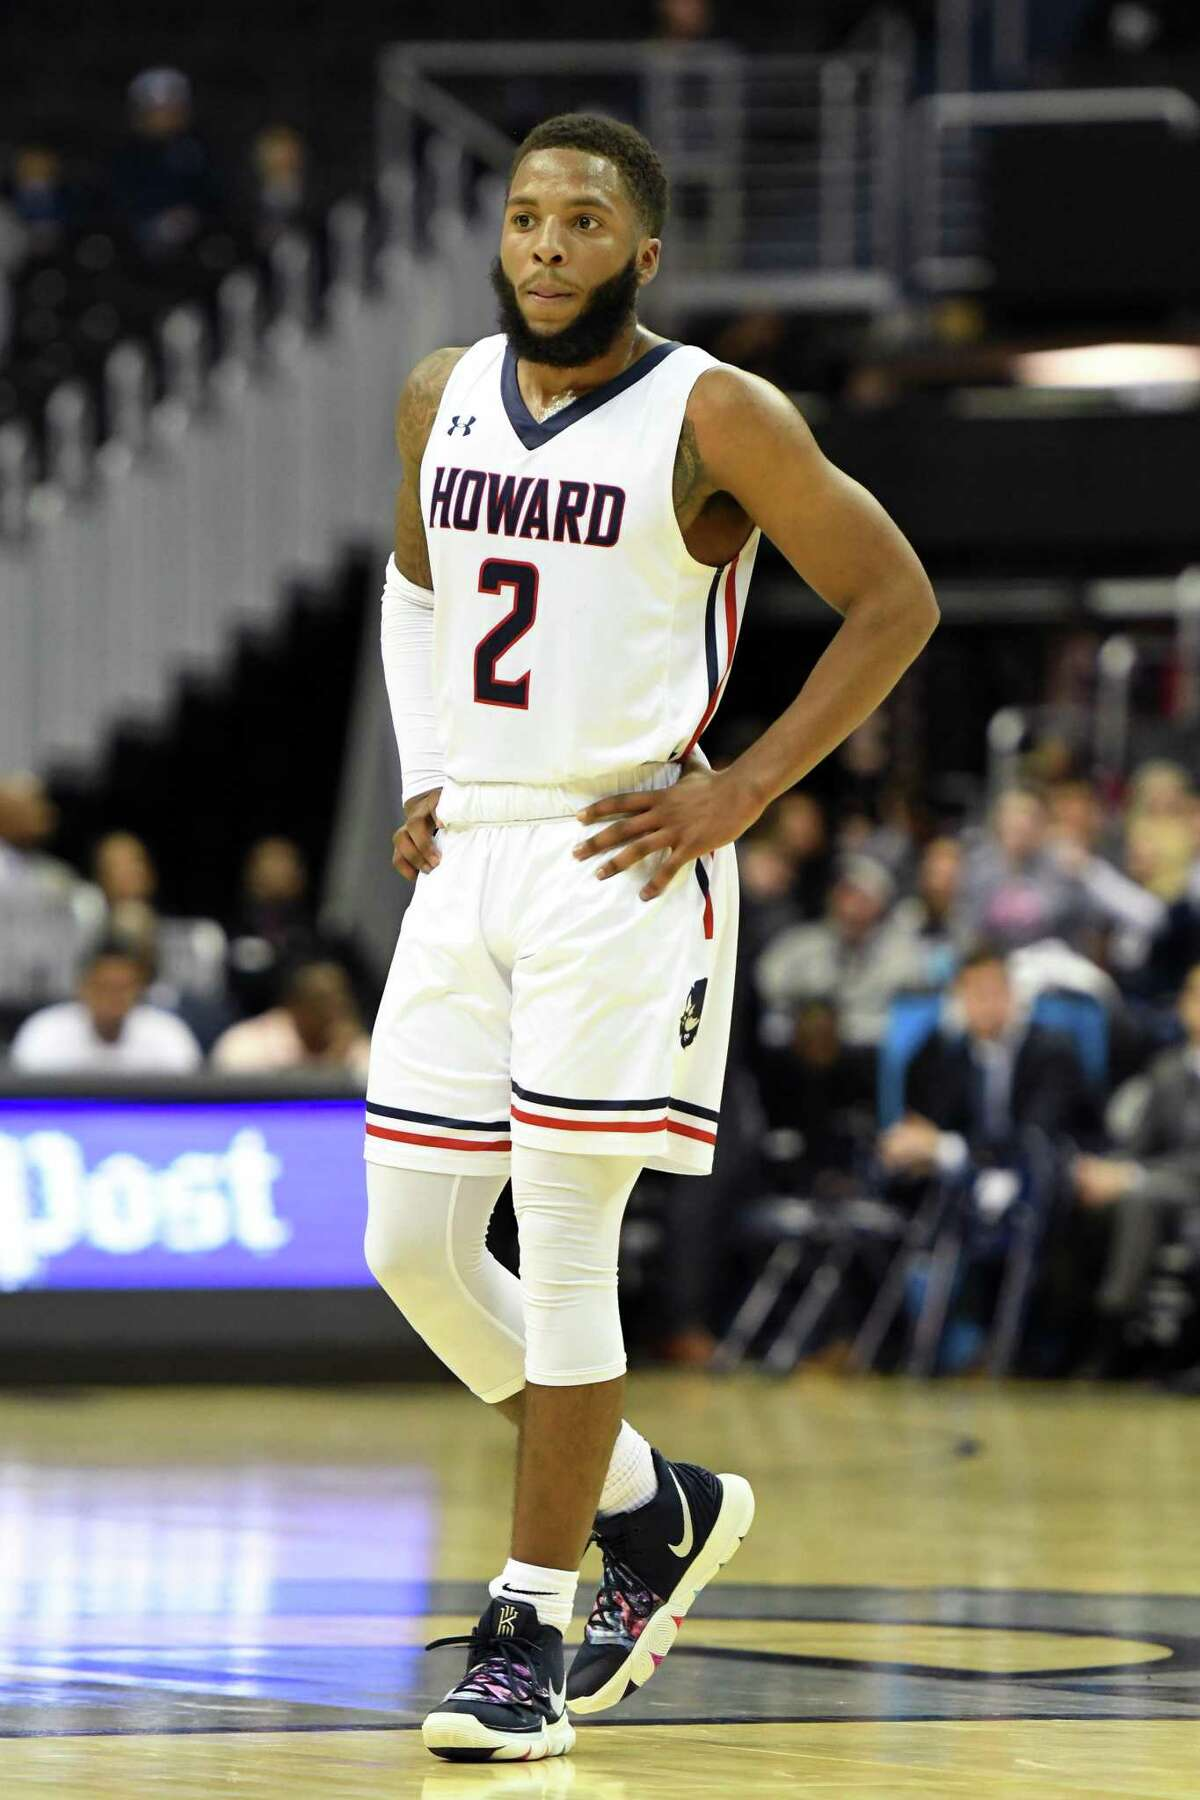 WASHINGTON, DC - DECEMBER 29: RJ Cole #2 of the Howard Bison looks on during a college basketball game against the Georgetown Hoyas at the Capital One Arena on December 29, 2018 in Washington, DC. (Photo by Mitchell Layton/Getty Images)